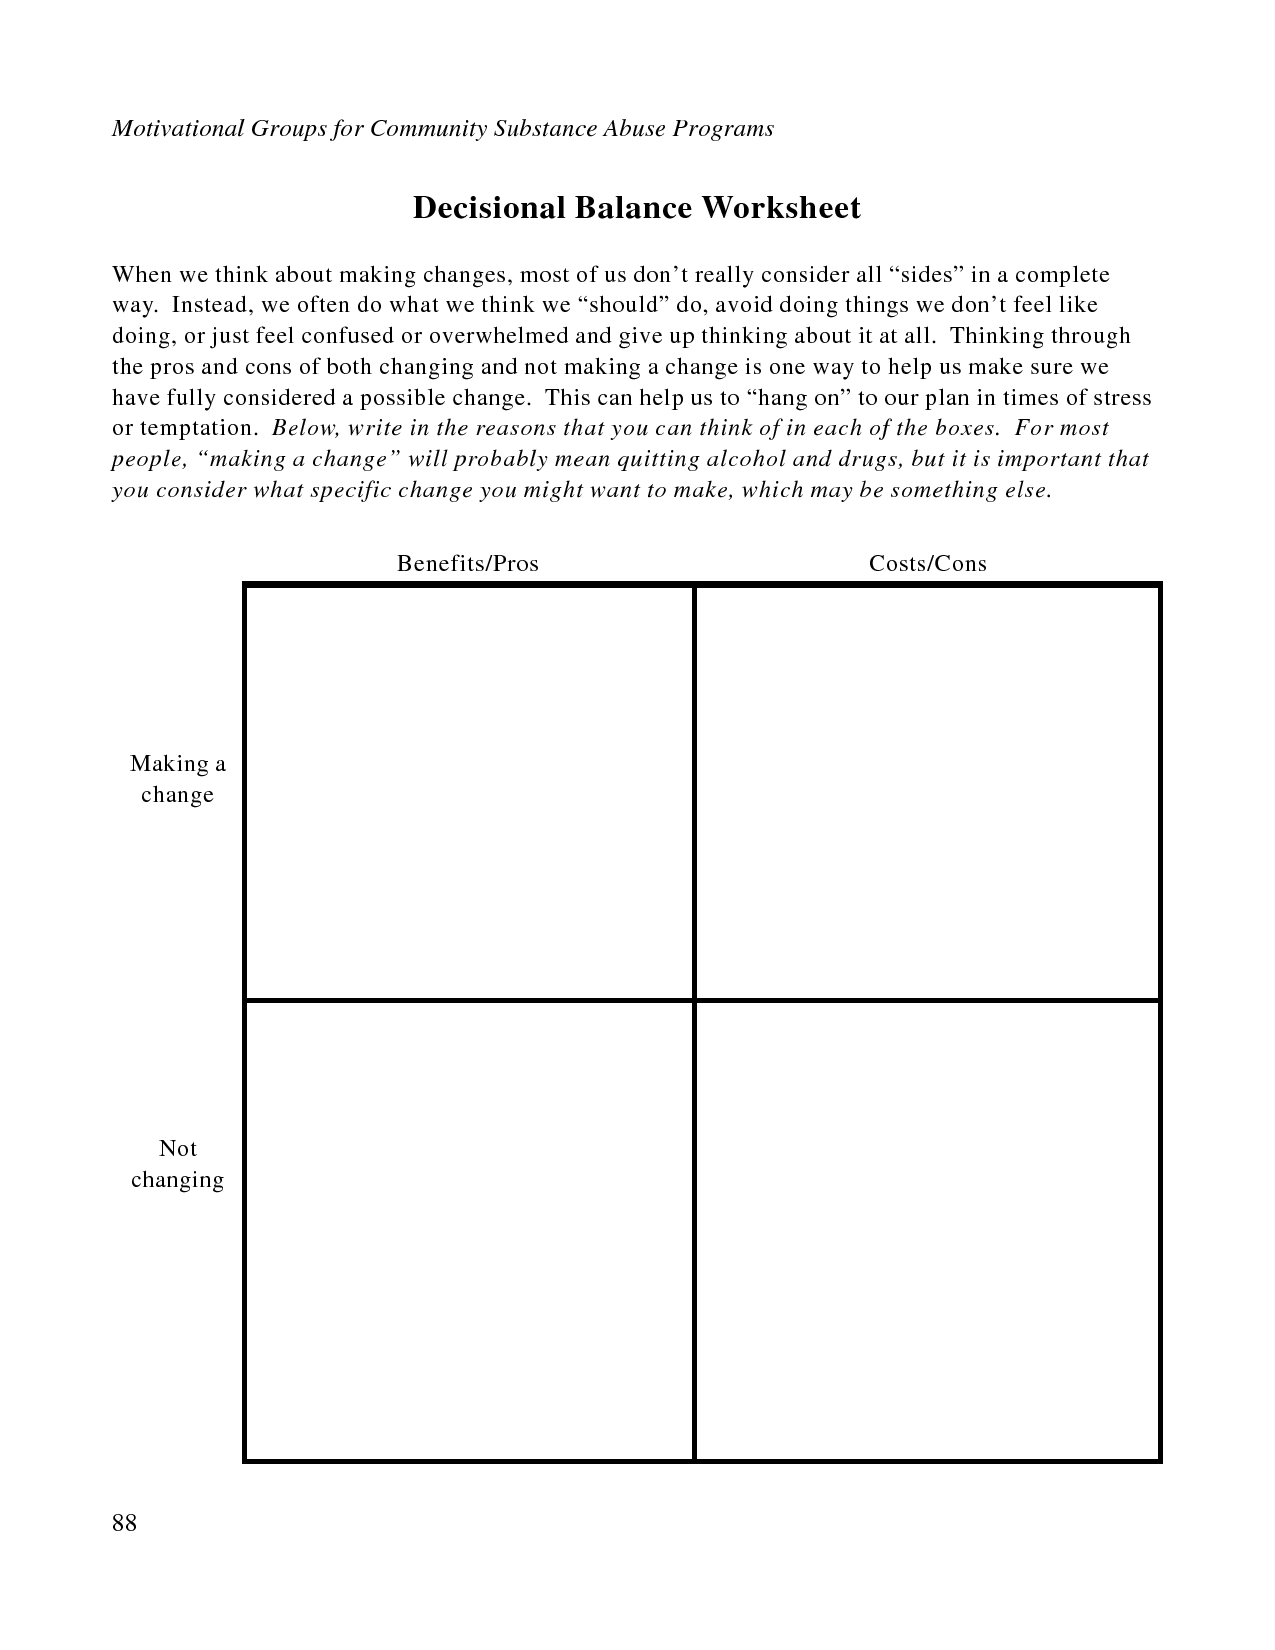 Worksheets For Therapy : Free printable dbt worksheets decisional balance